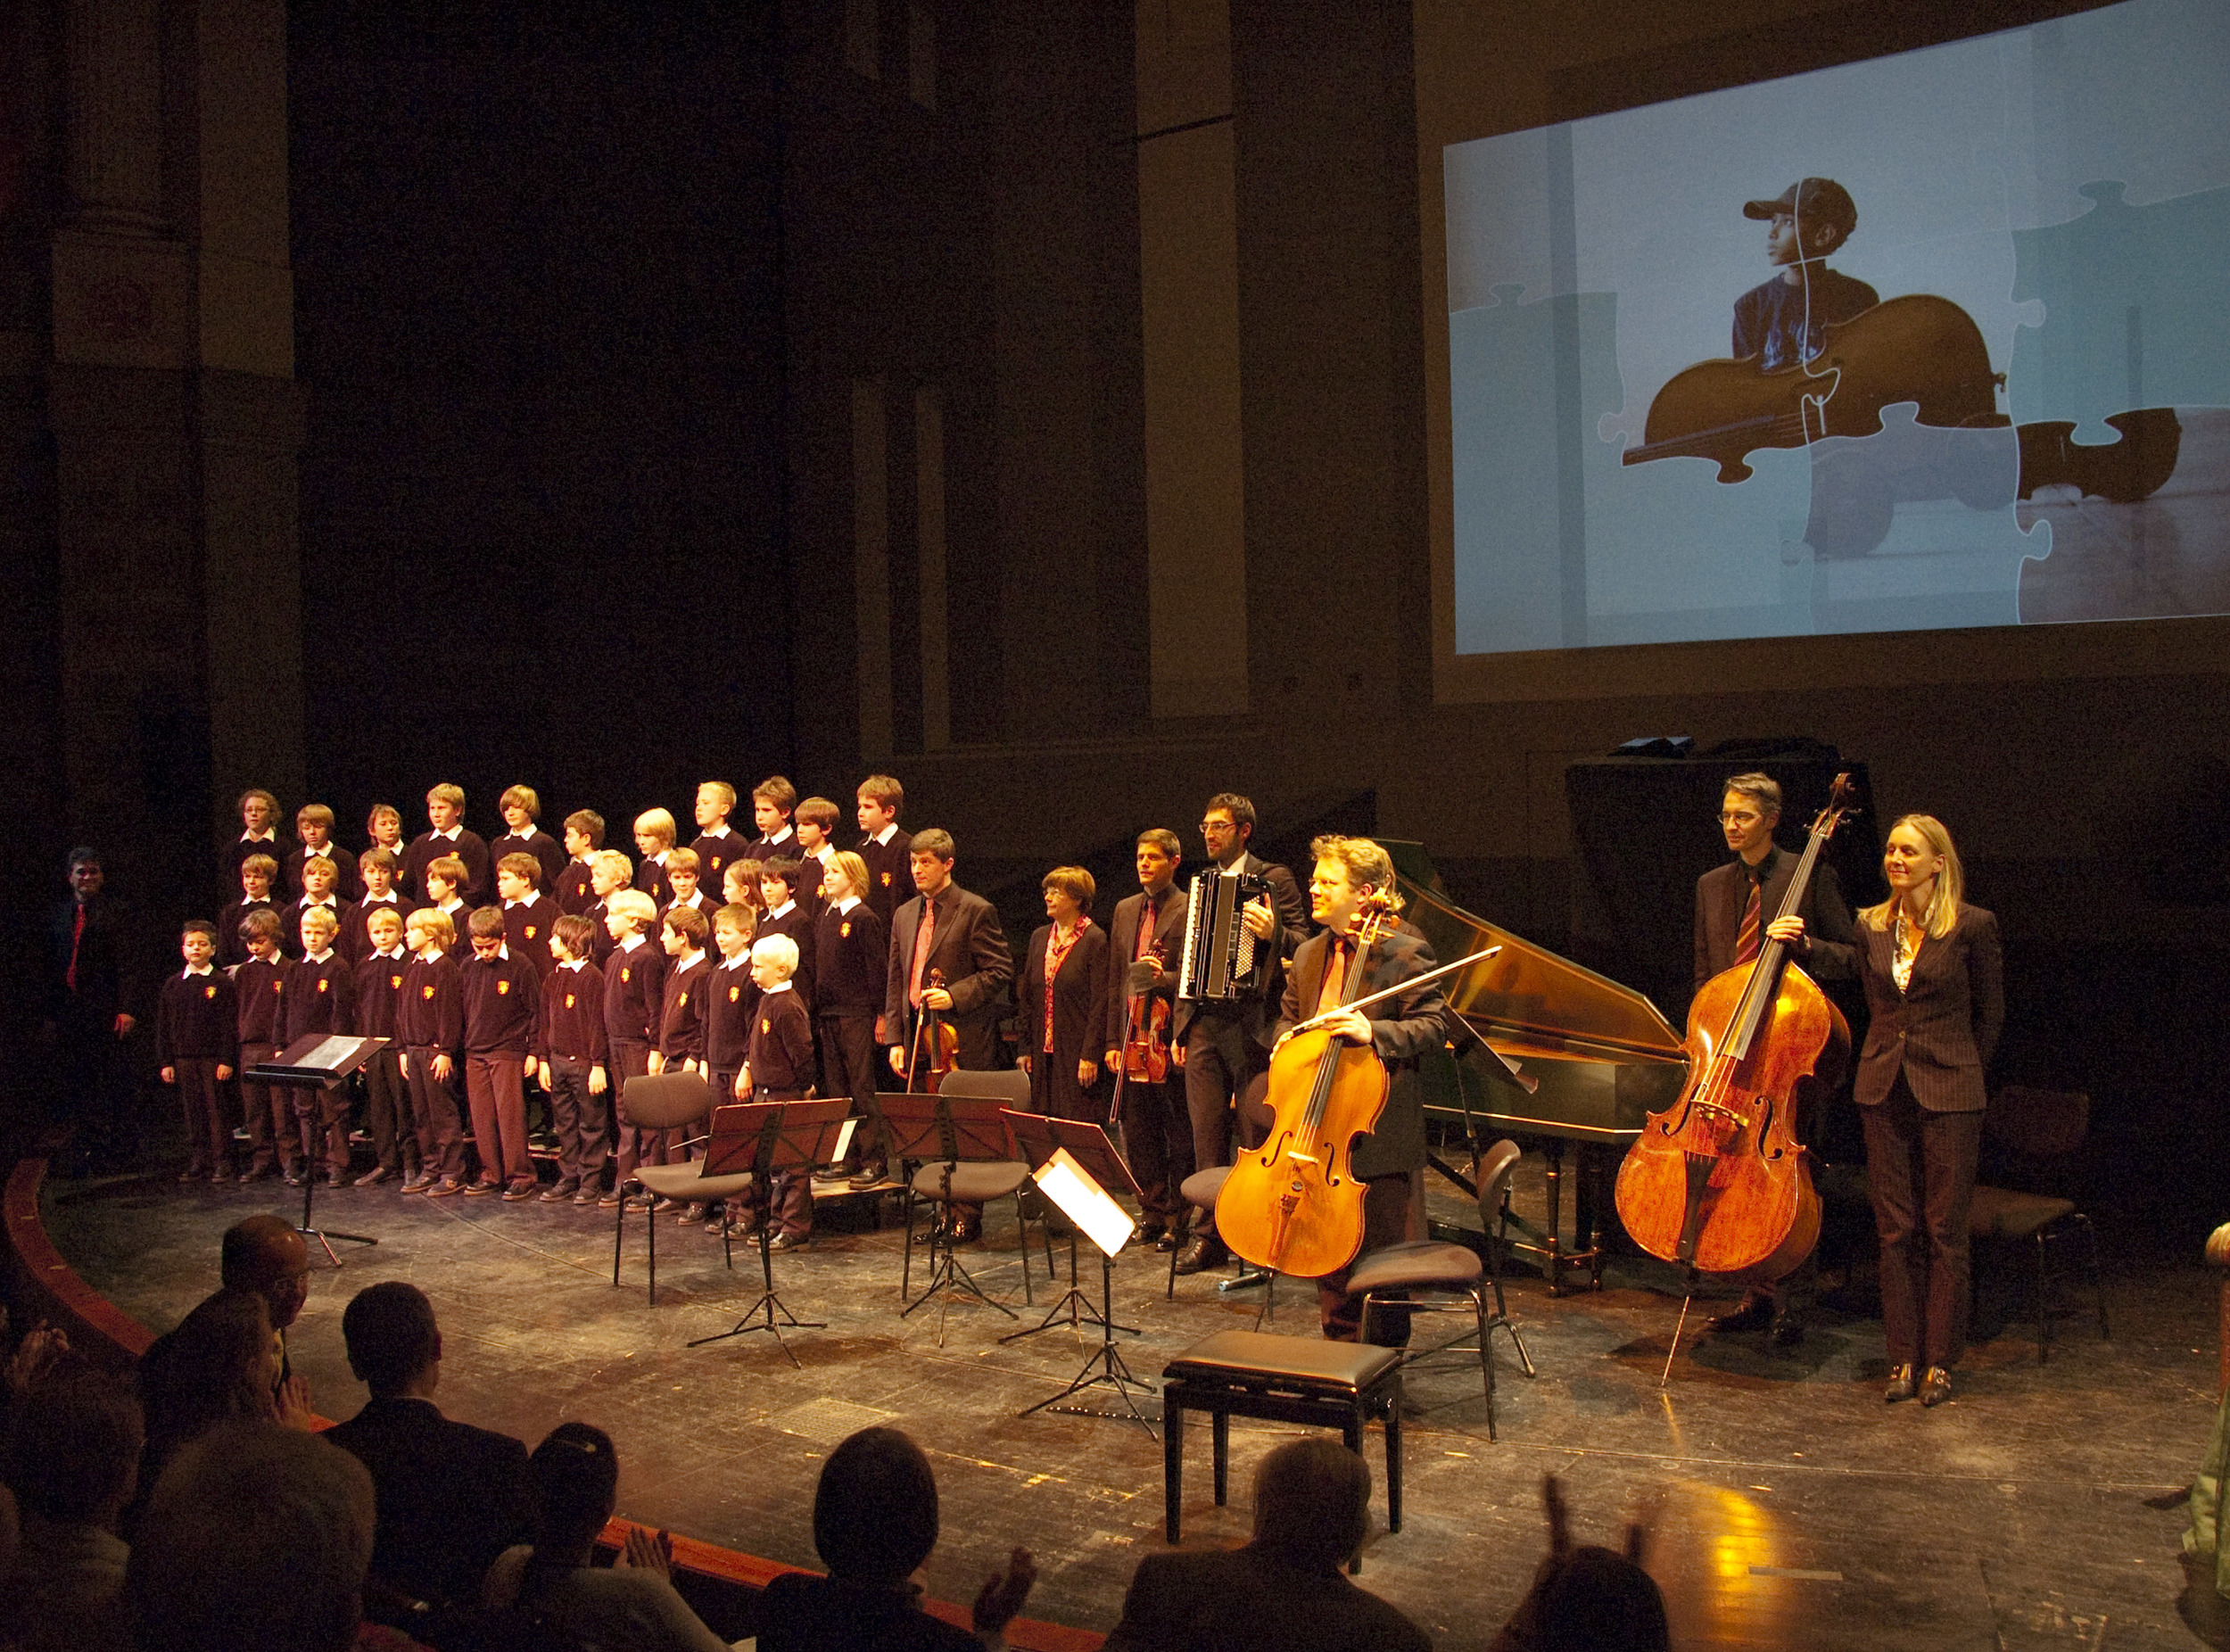 Fundraising gala concert for SOS children´s villages